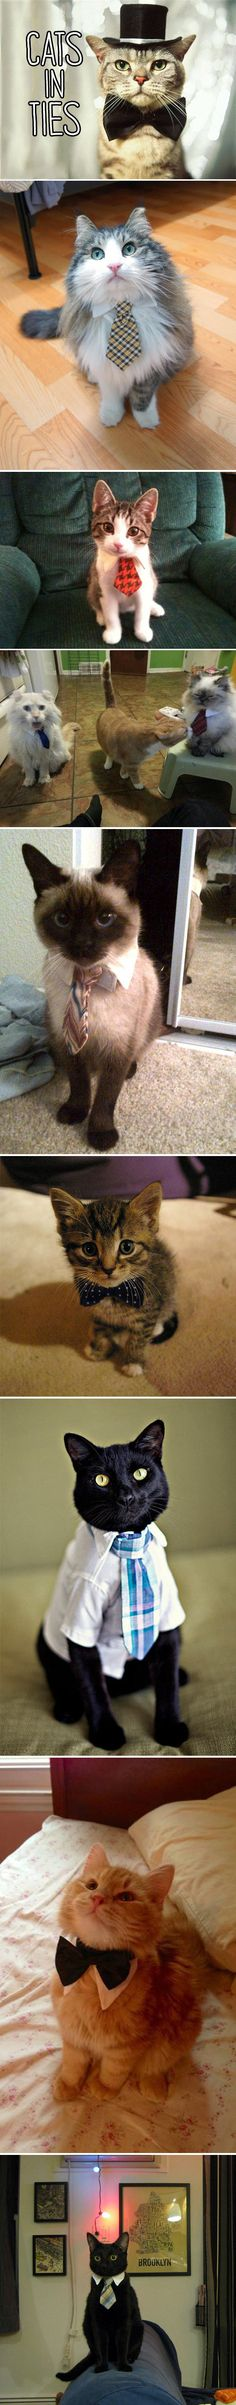 Fashionable cats. Bow ties on cats - surprise win for the day.